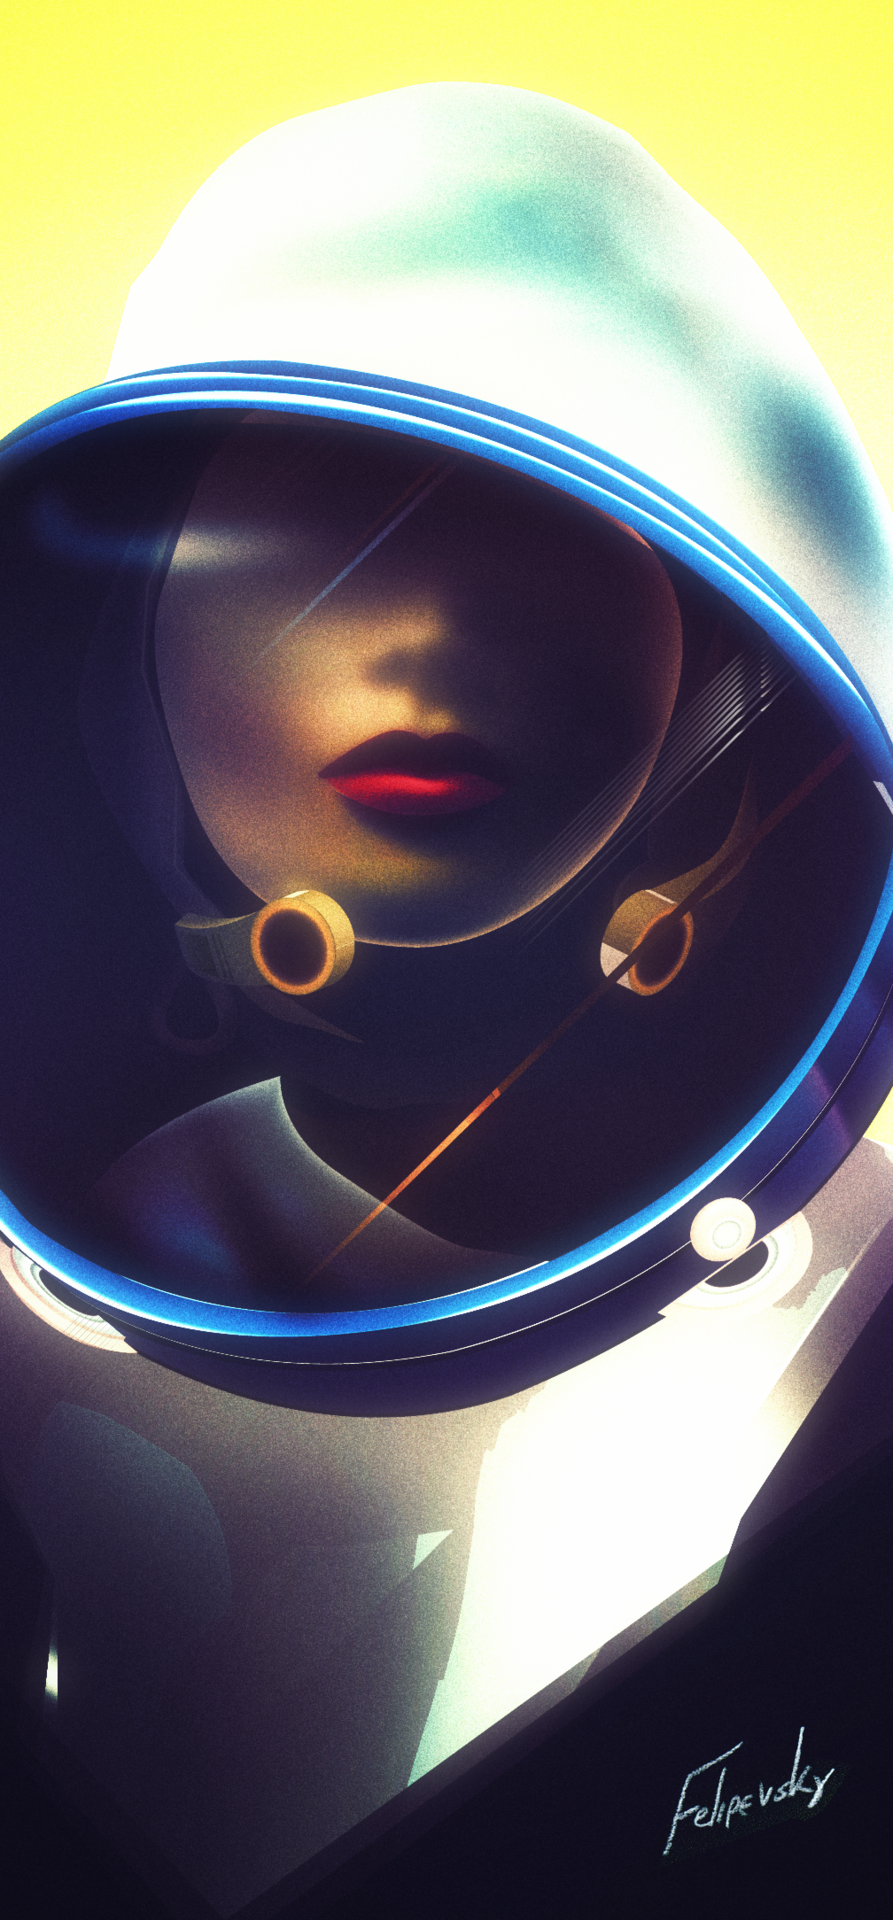 Futuristic Illustrations - Felipevsky